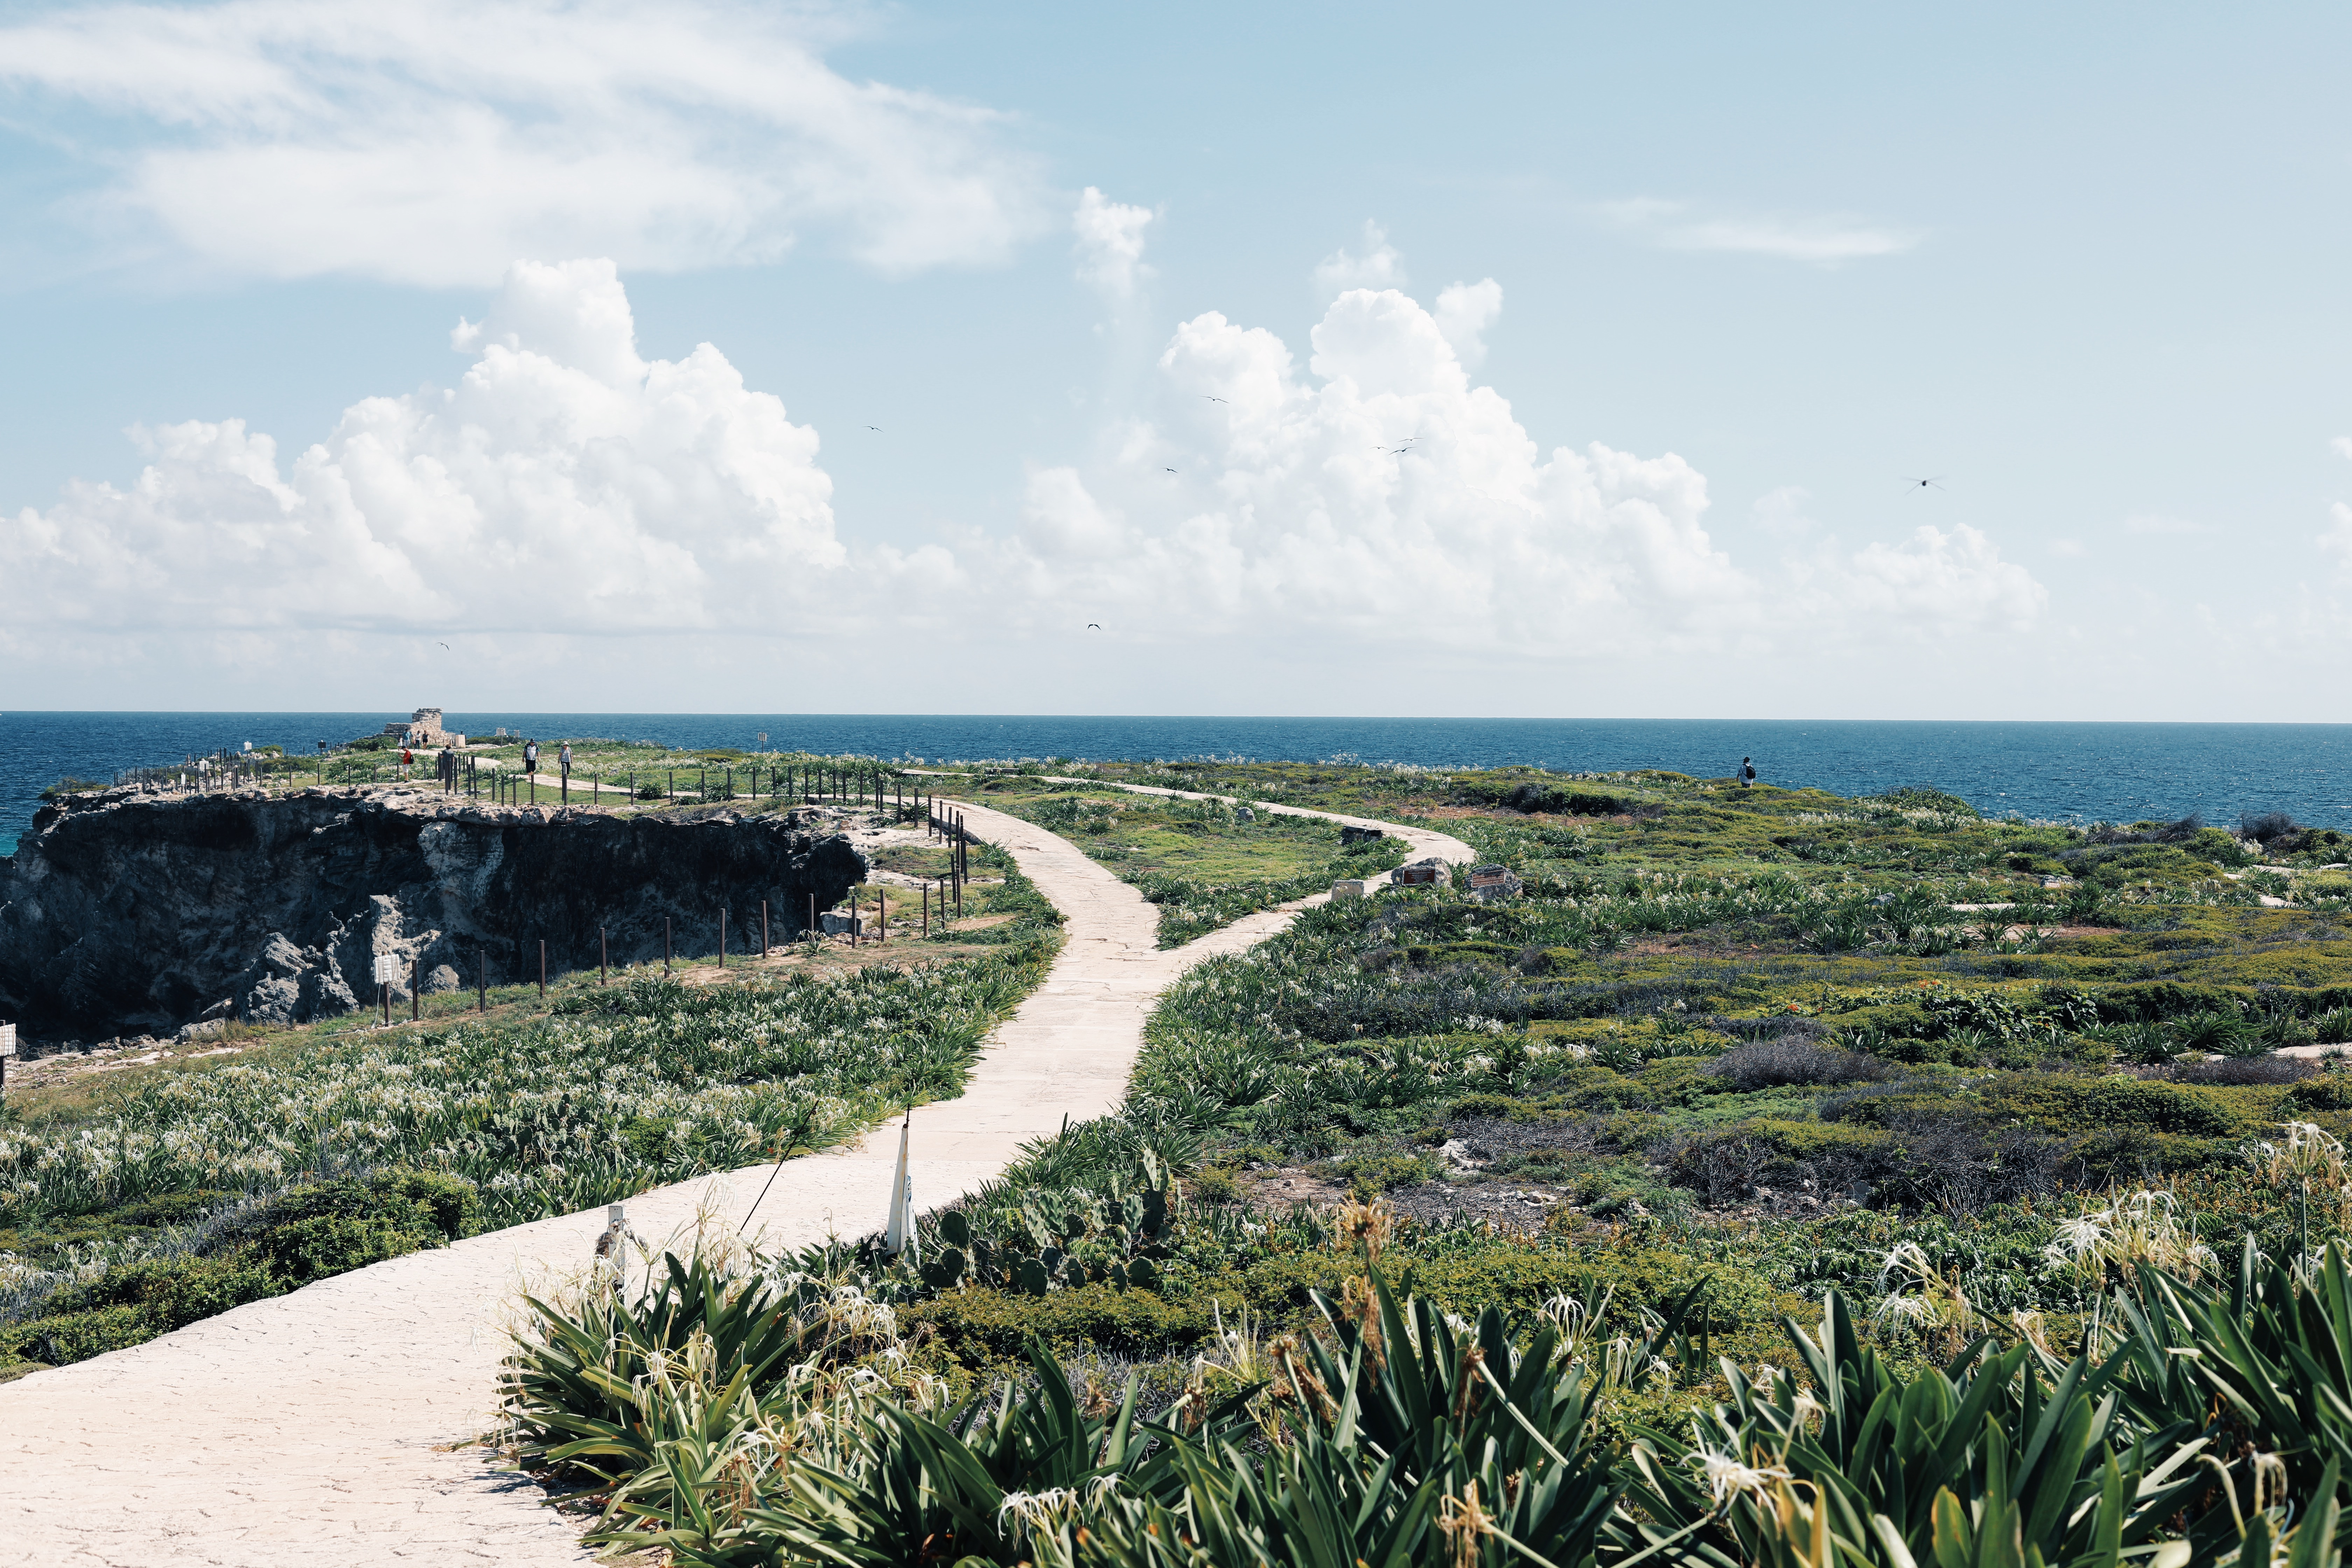 Punta Sur garden and panoramic views of the sea at Isla Mujeres, Mexico